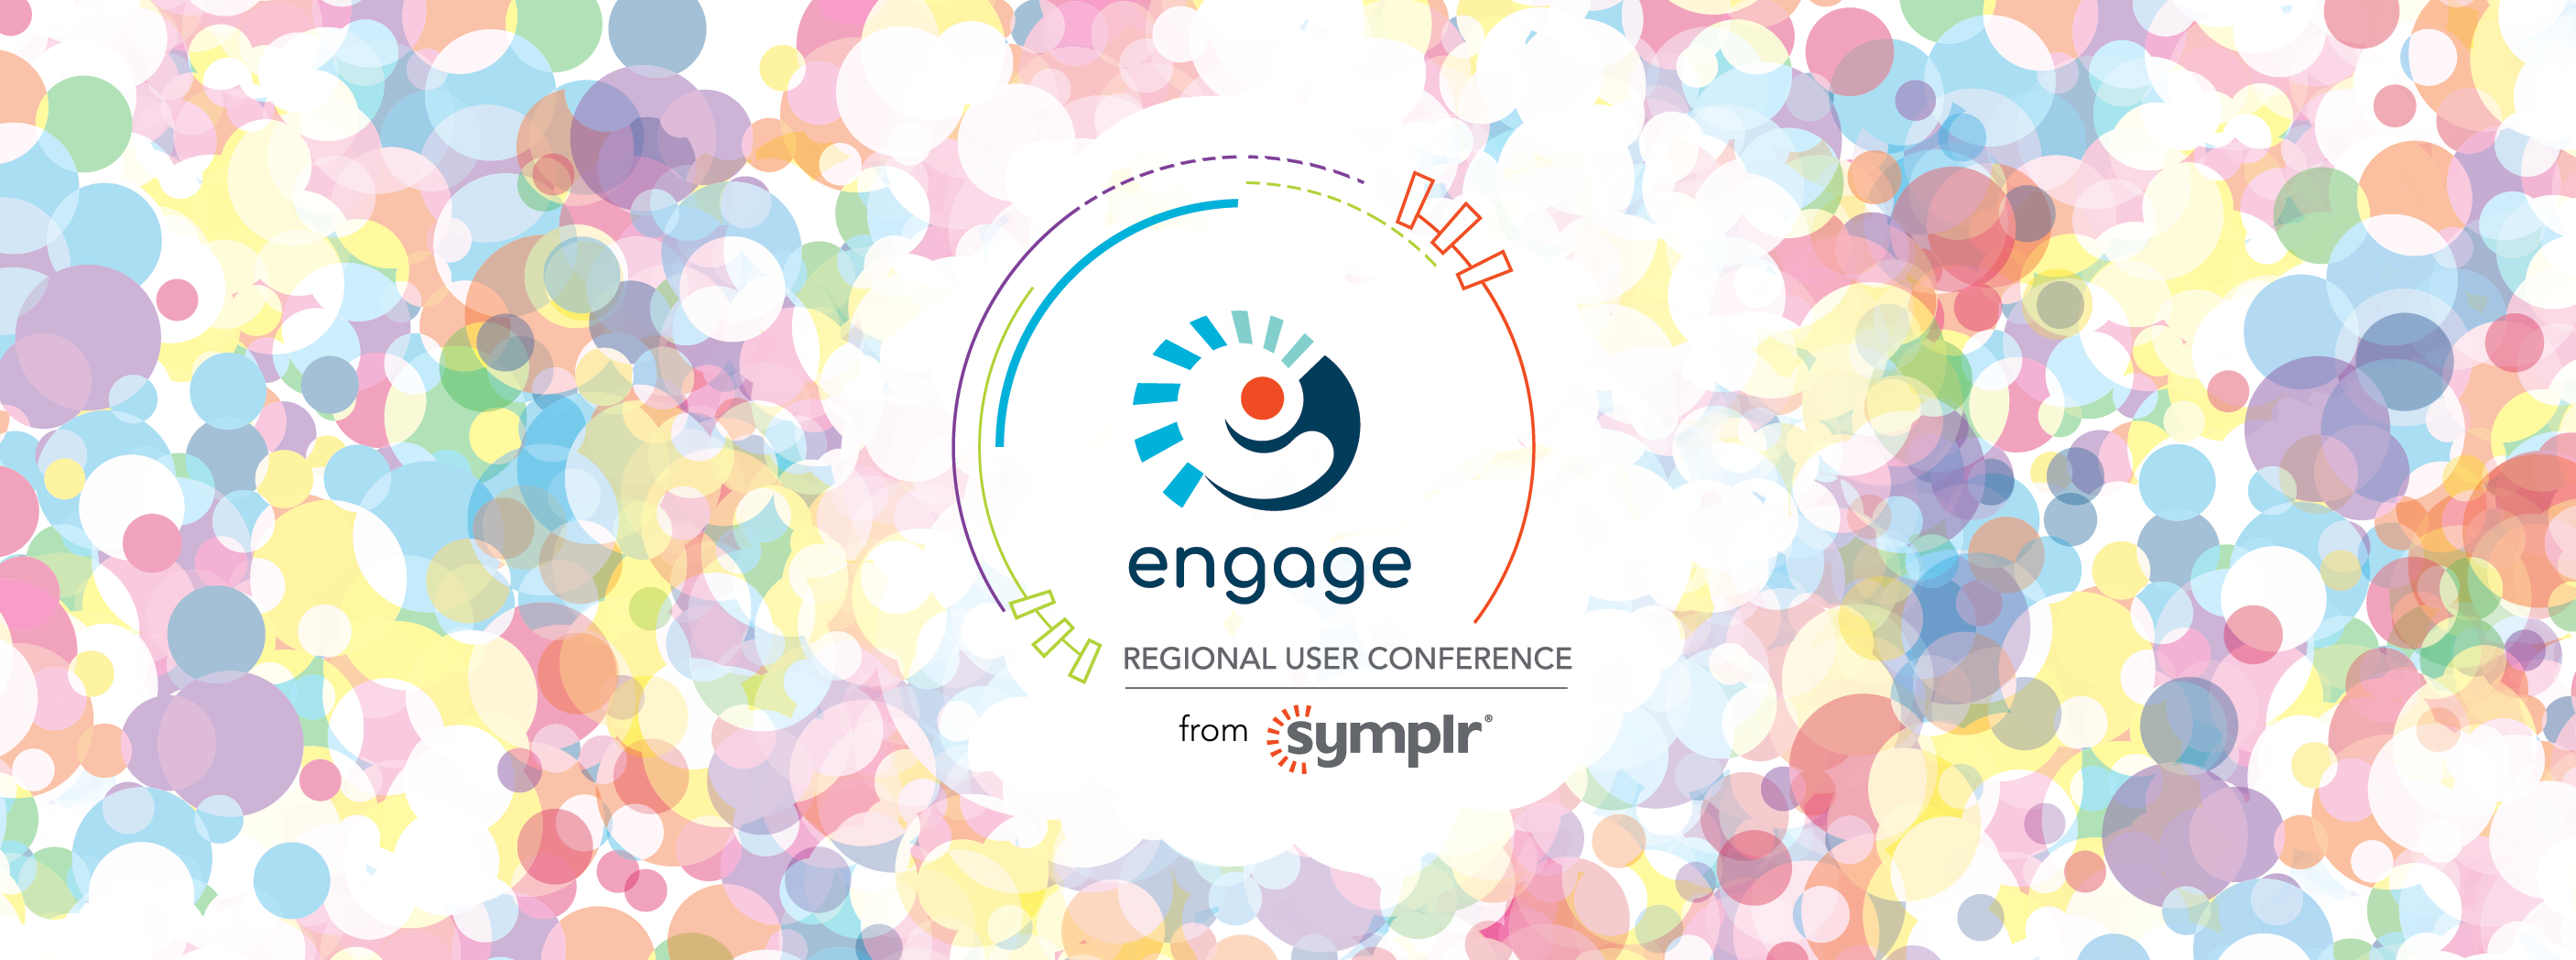 Learn, grow and engage at symplr's Regional User Conferences